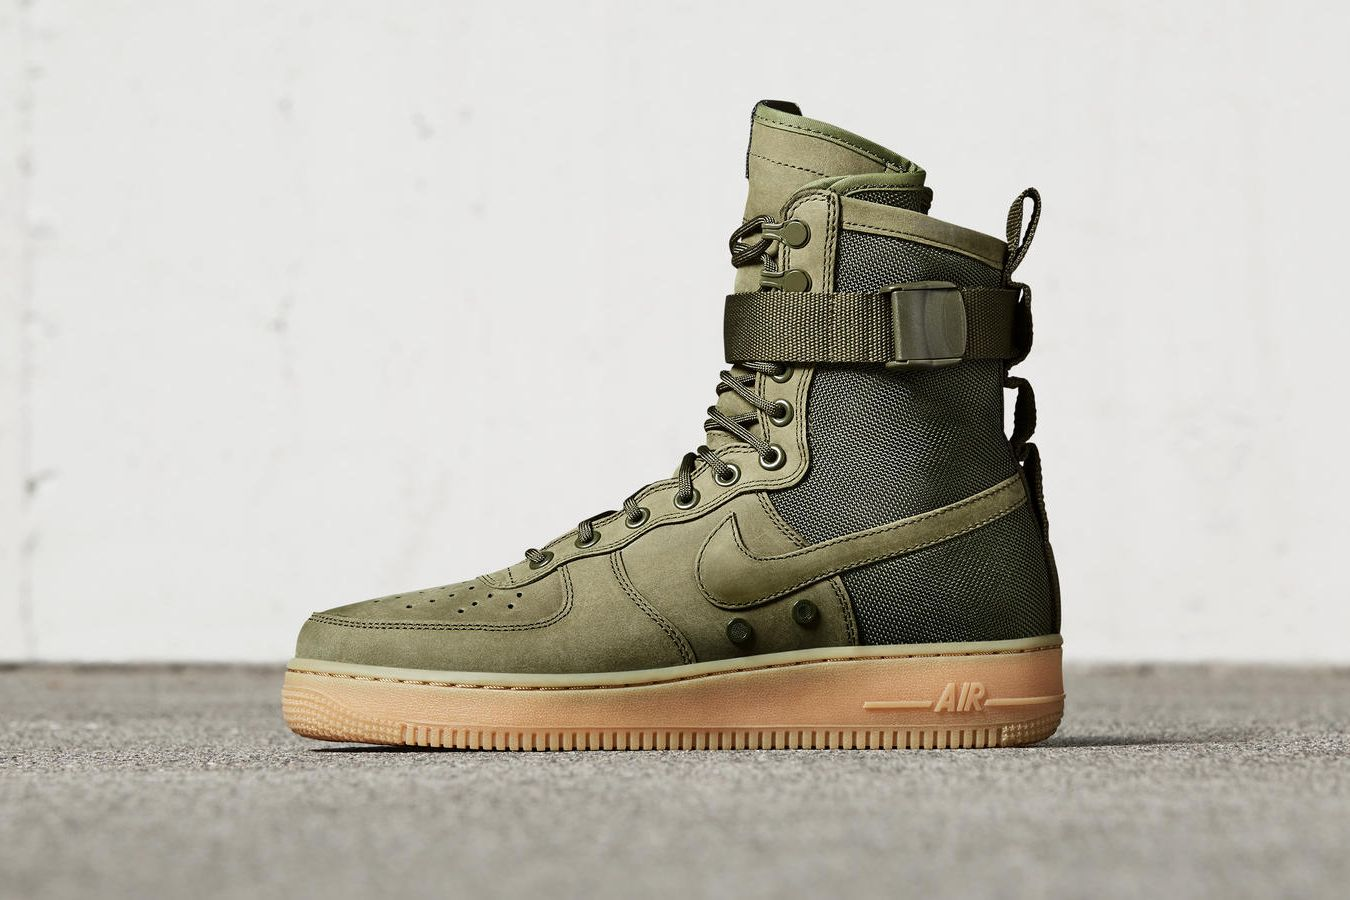 sale retailer af70f 7e3d2 The SF AF-1 is a winterized take on the iconic Air Force 1 silhouette.